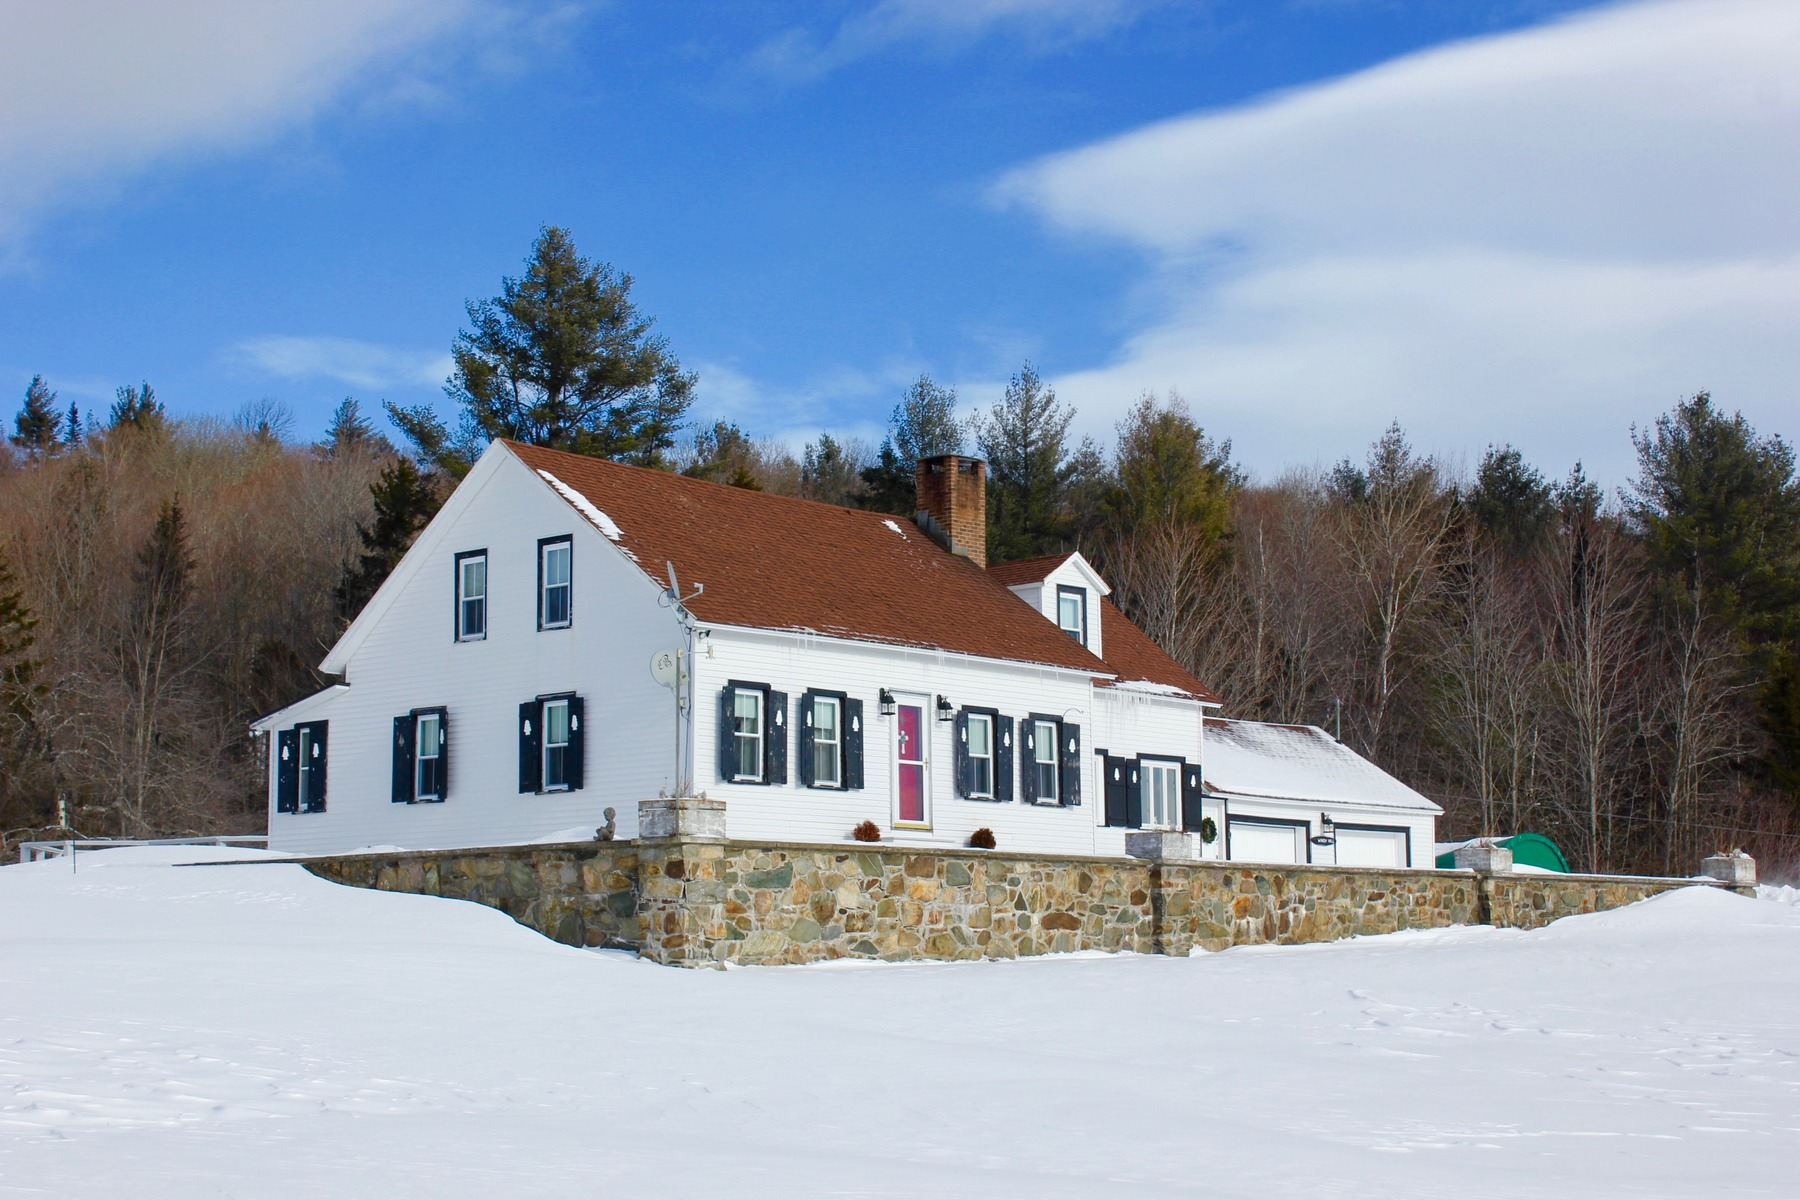 Casa Unifamiliar por un Venta en Welcome to Windy Lane 166 Windy Hill Ln Mount Holly, Vermont 05758 Estados Unidos